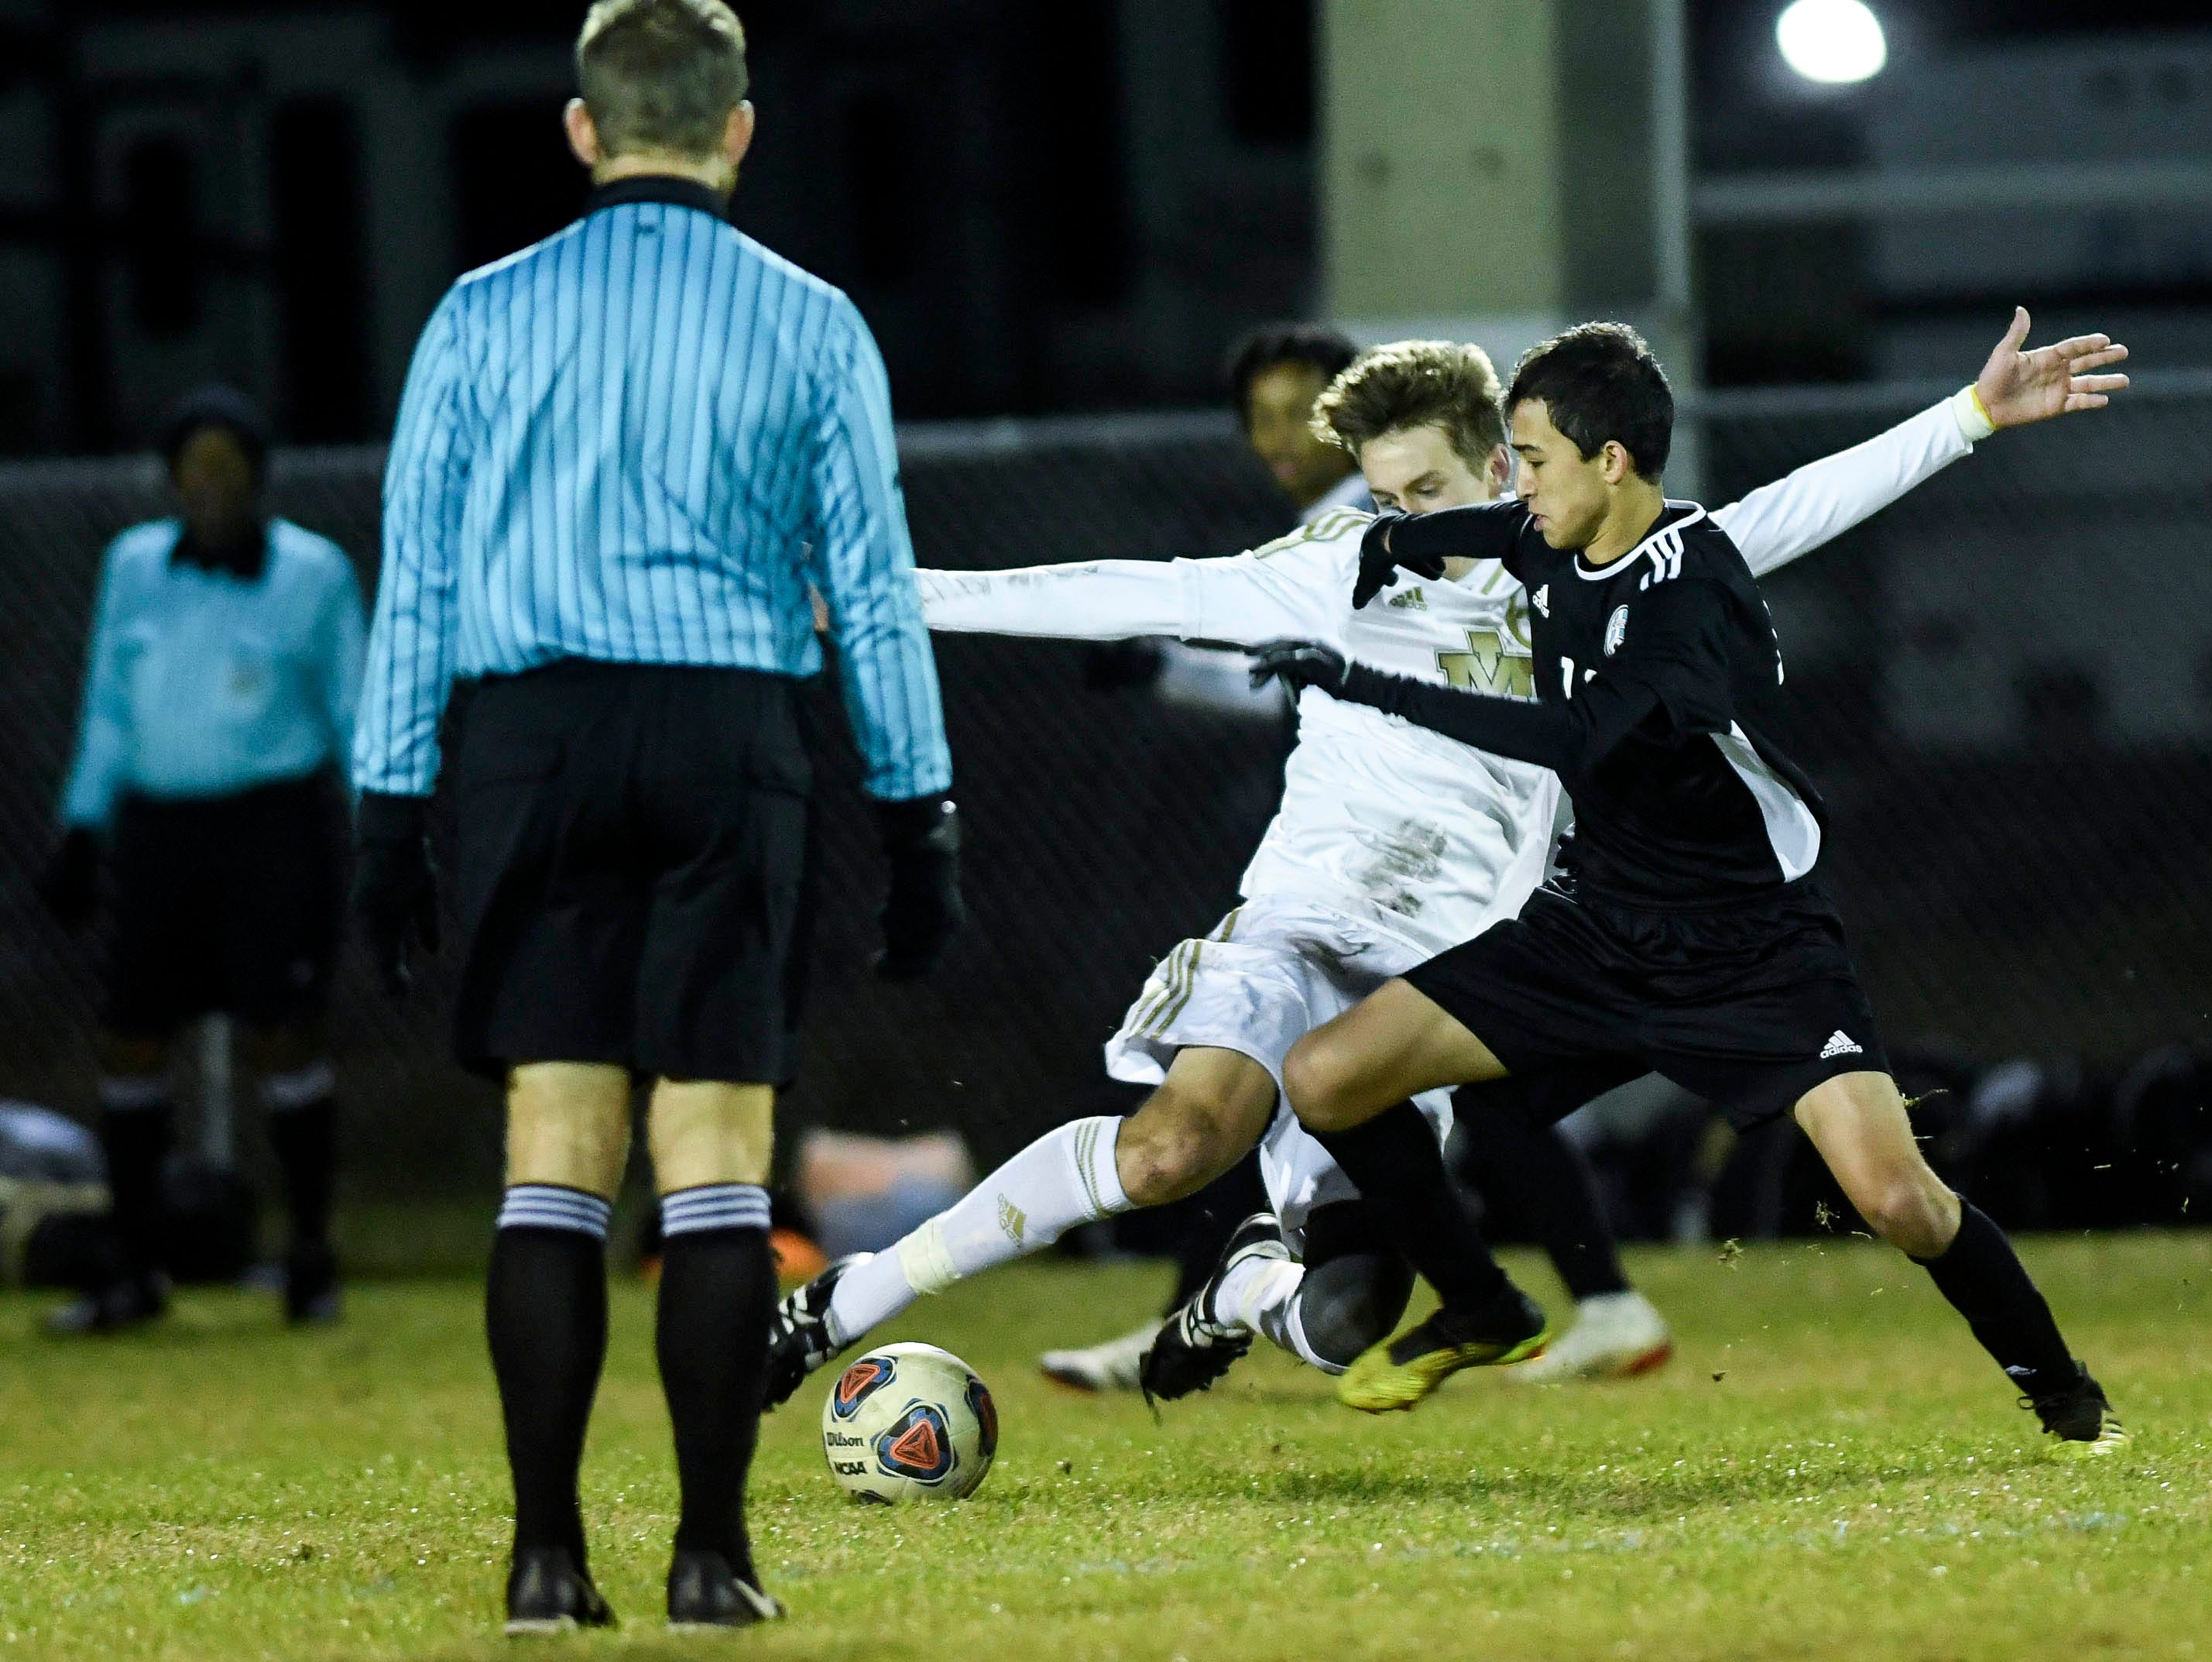 Merritt Island's Dan Gerondidakis and Luis Esteban Son of Rockledge battle for control of the ball during Wednesday's District 12, Class 3A semifinal at McLarty Stadium